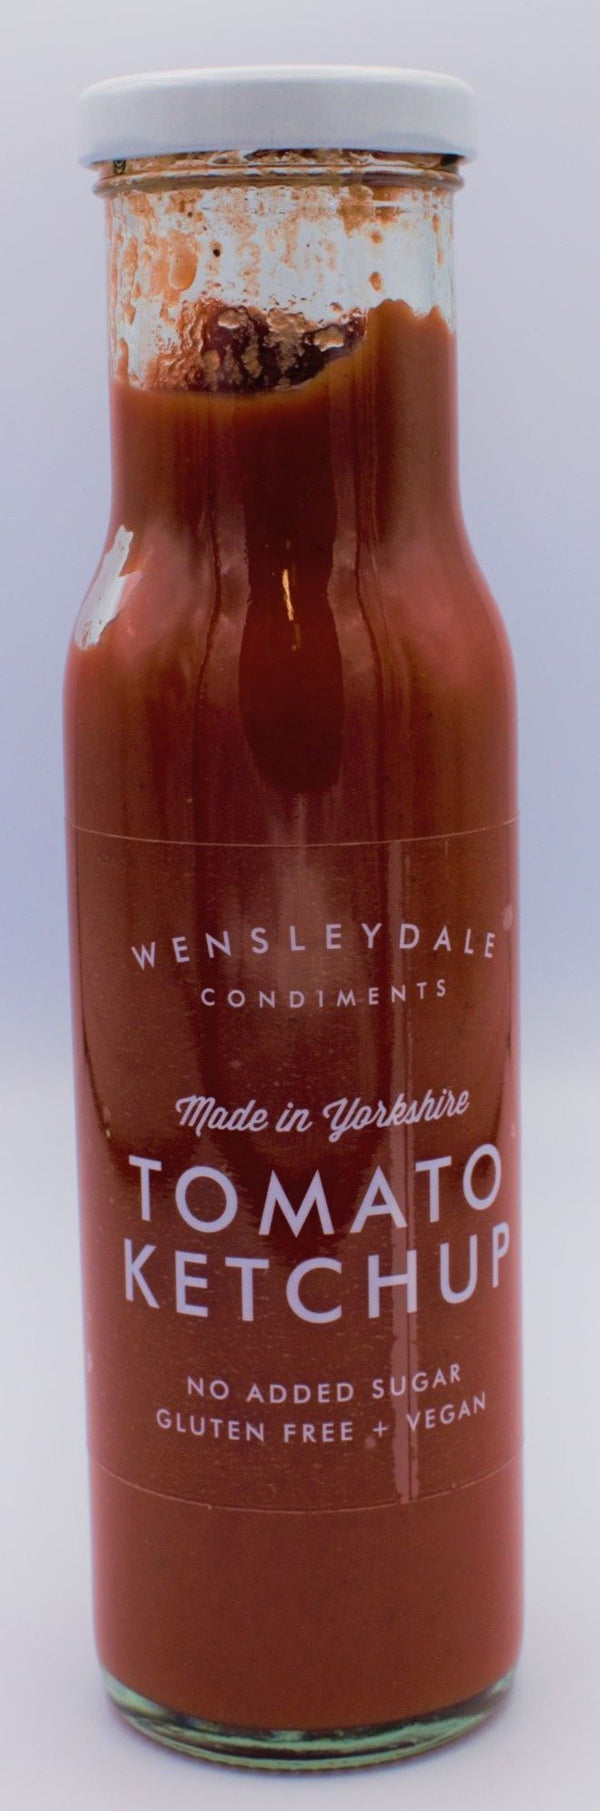 Wensleydale Condiments Tomato Ketchup - Best British Produce